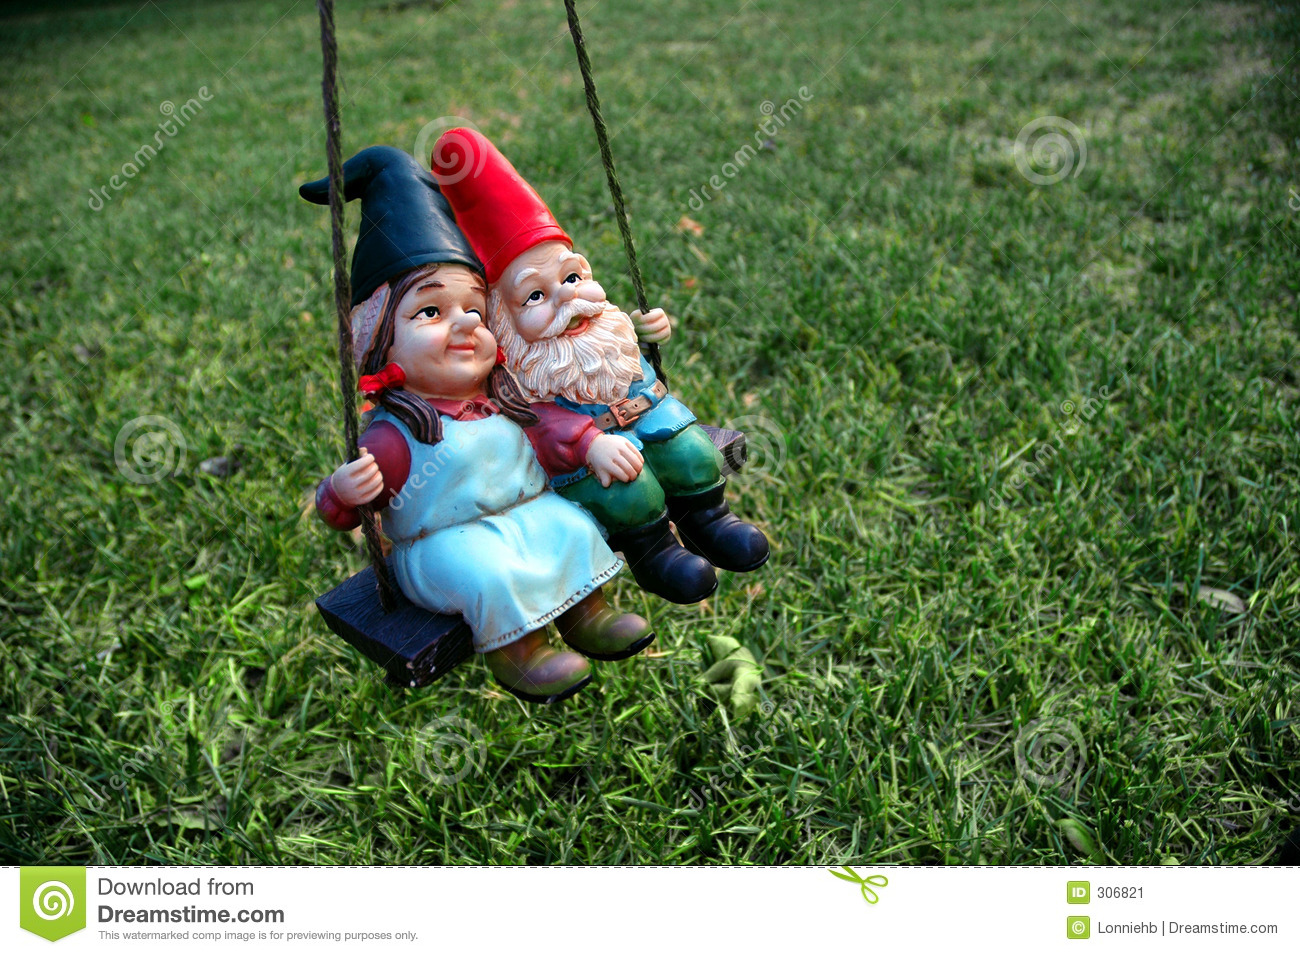 Lawn gnome nude photos nude picture